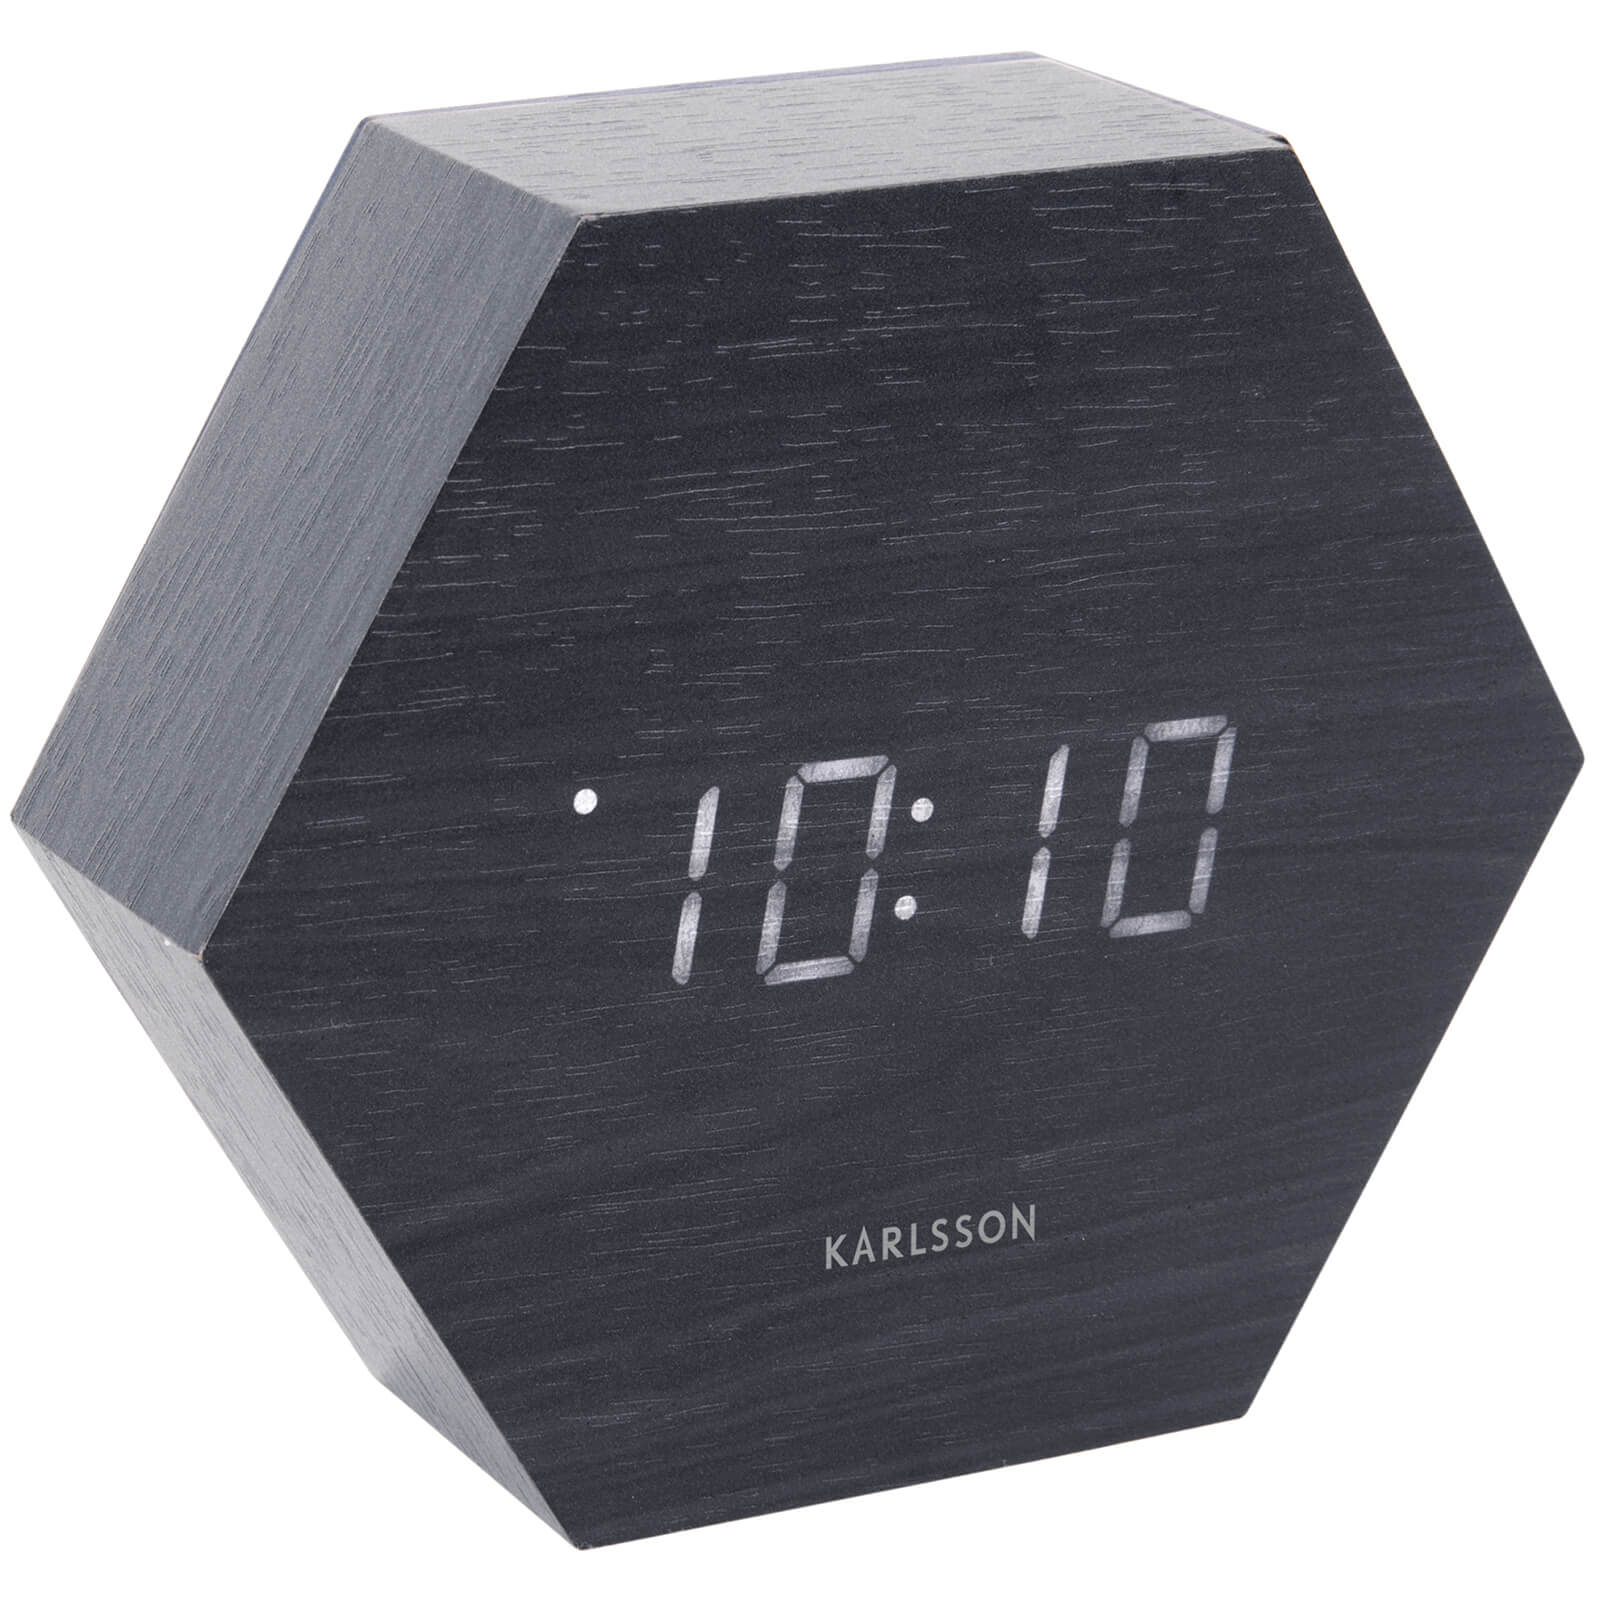 Karlsson Hexagon Alarm Clock - Black Veneer with White LED